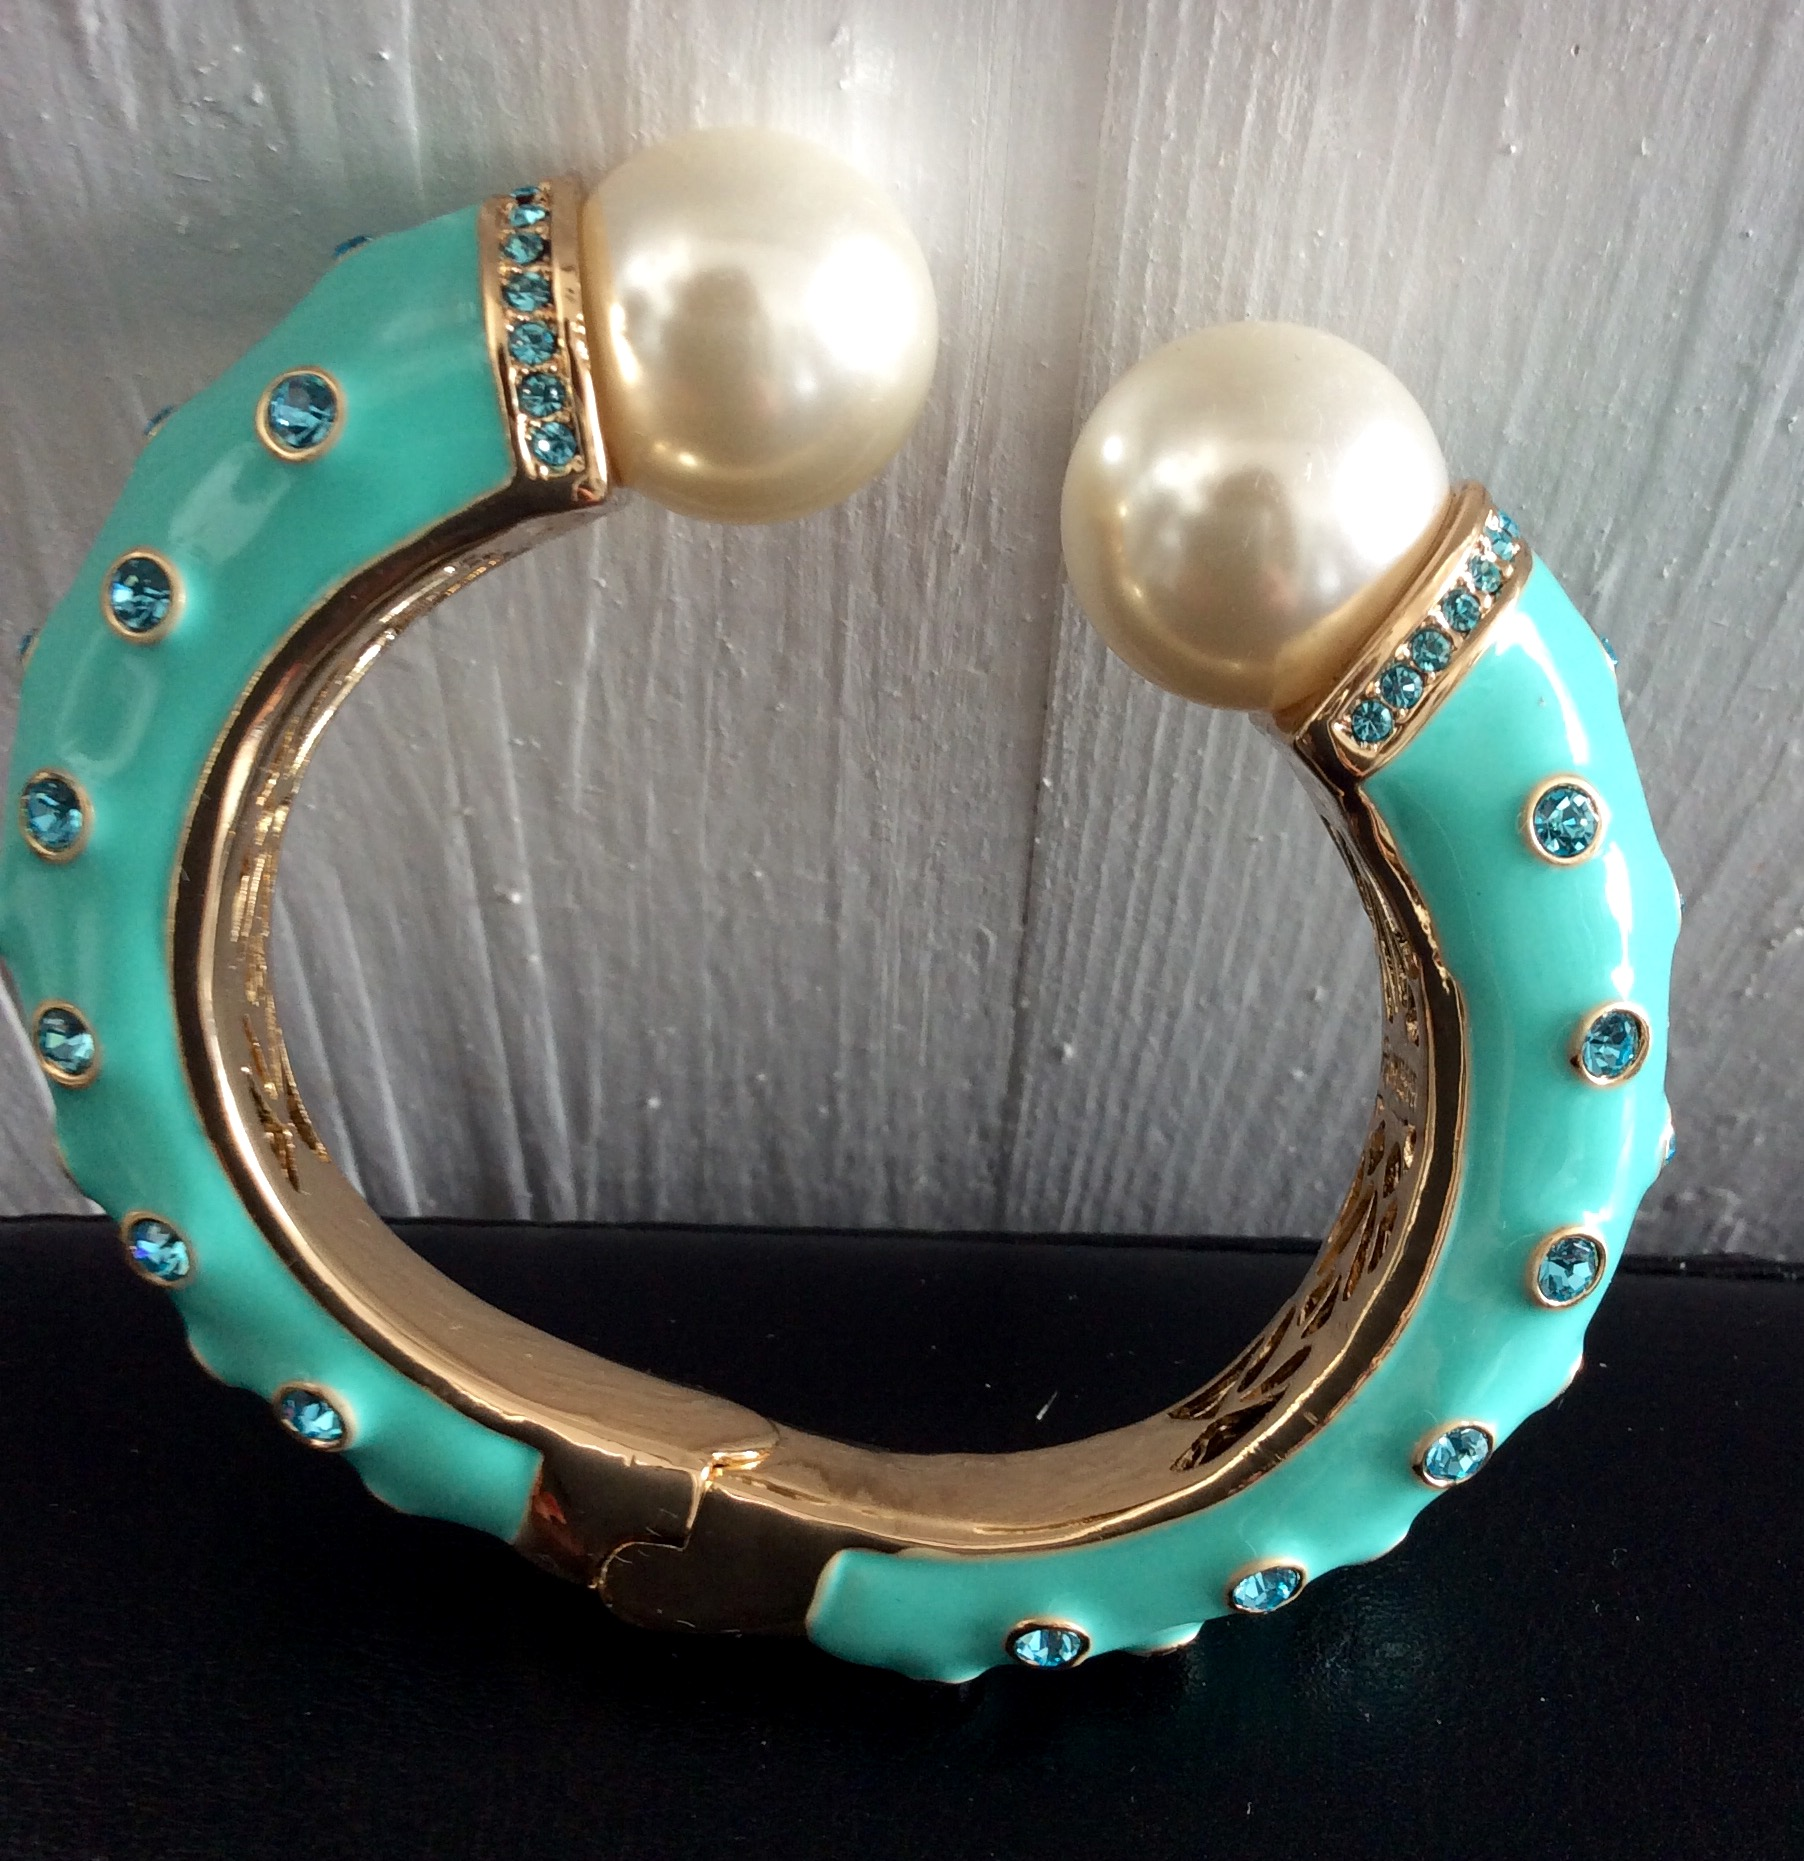 Amishi turquoise bracelet with Pearls and Crystals